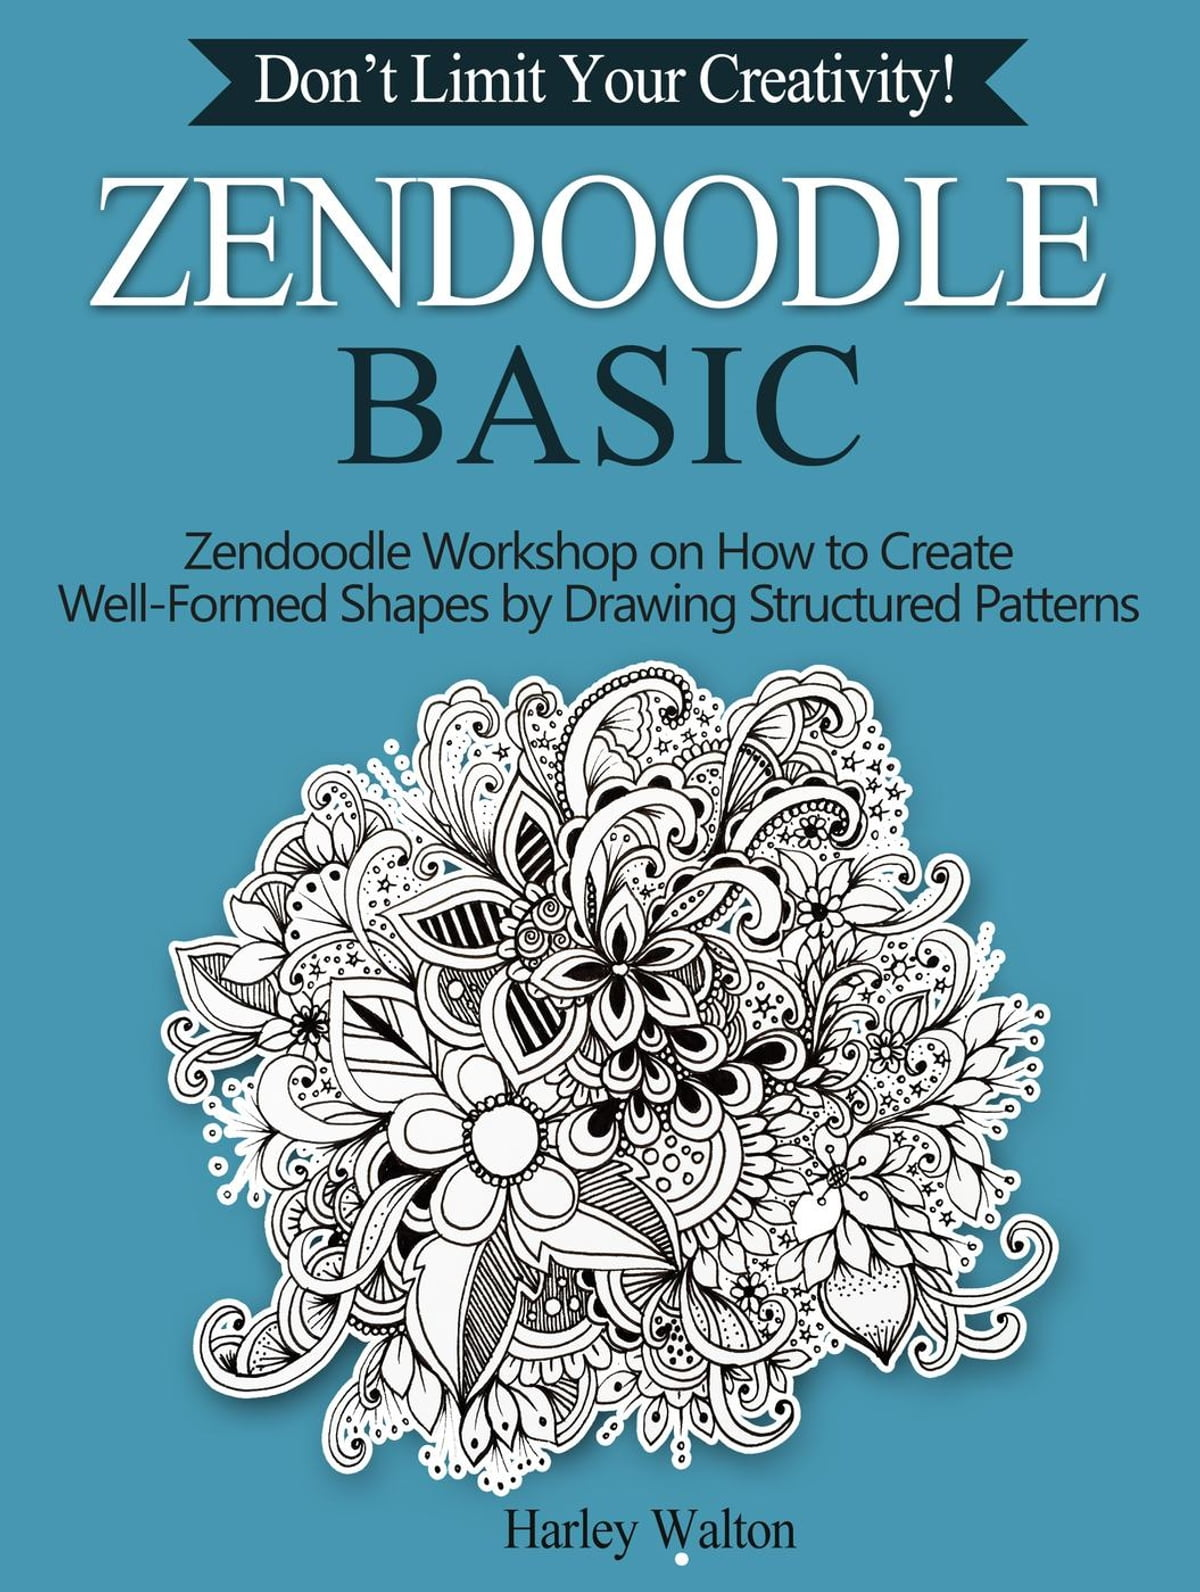 Zendoodle Basic: Don't Limit Your Creativity! Zendoodle Workshop on How to  Create Well-Formed Shapes by Drawing Structured Patterns ebook by Harley